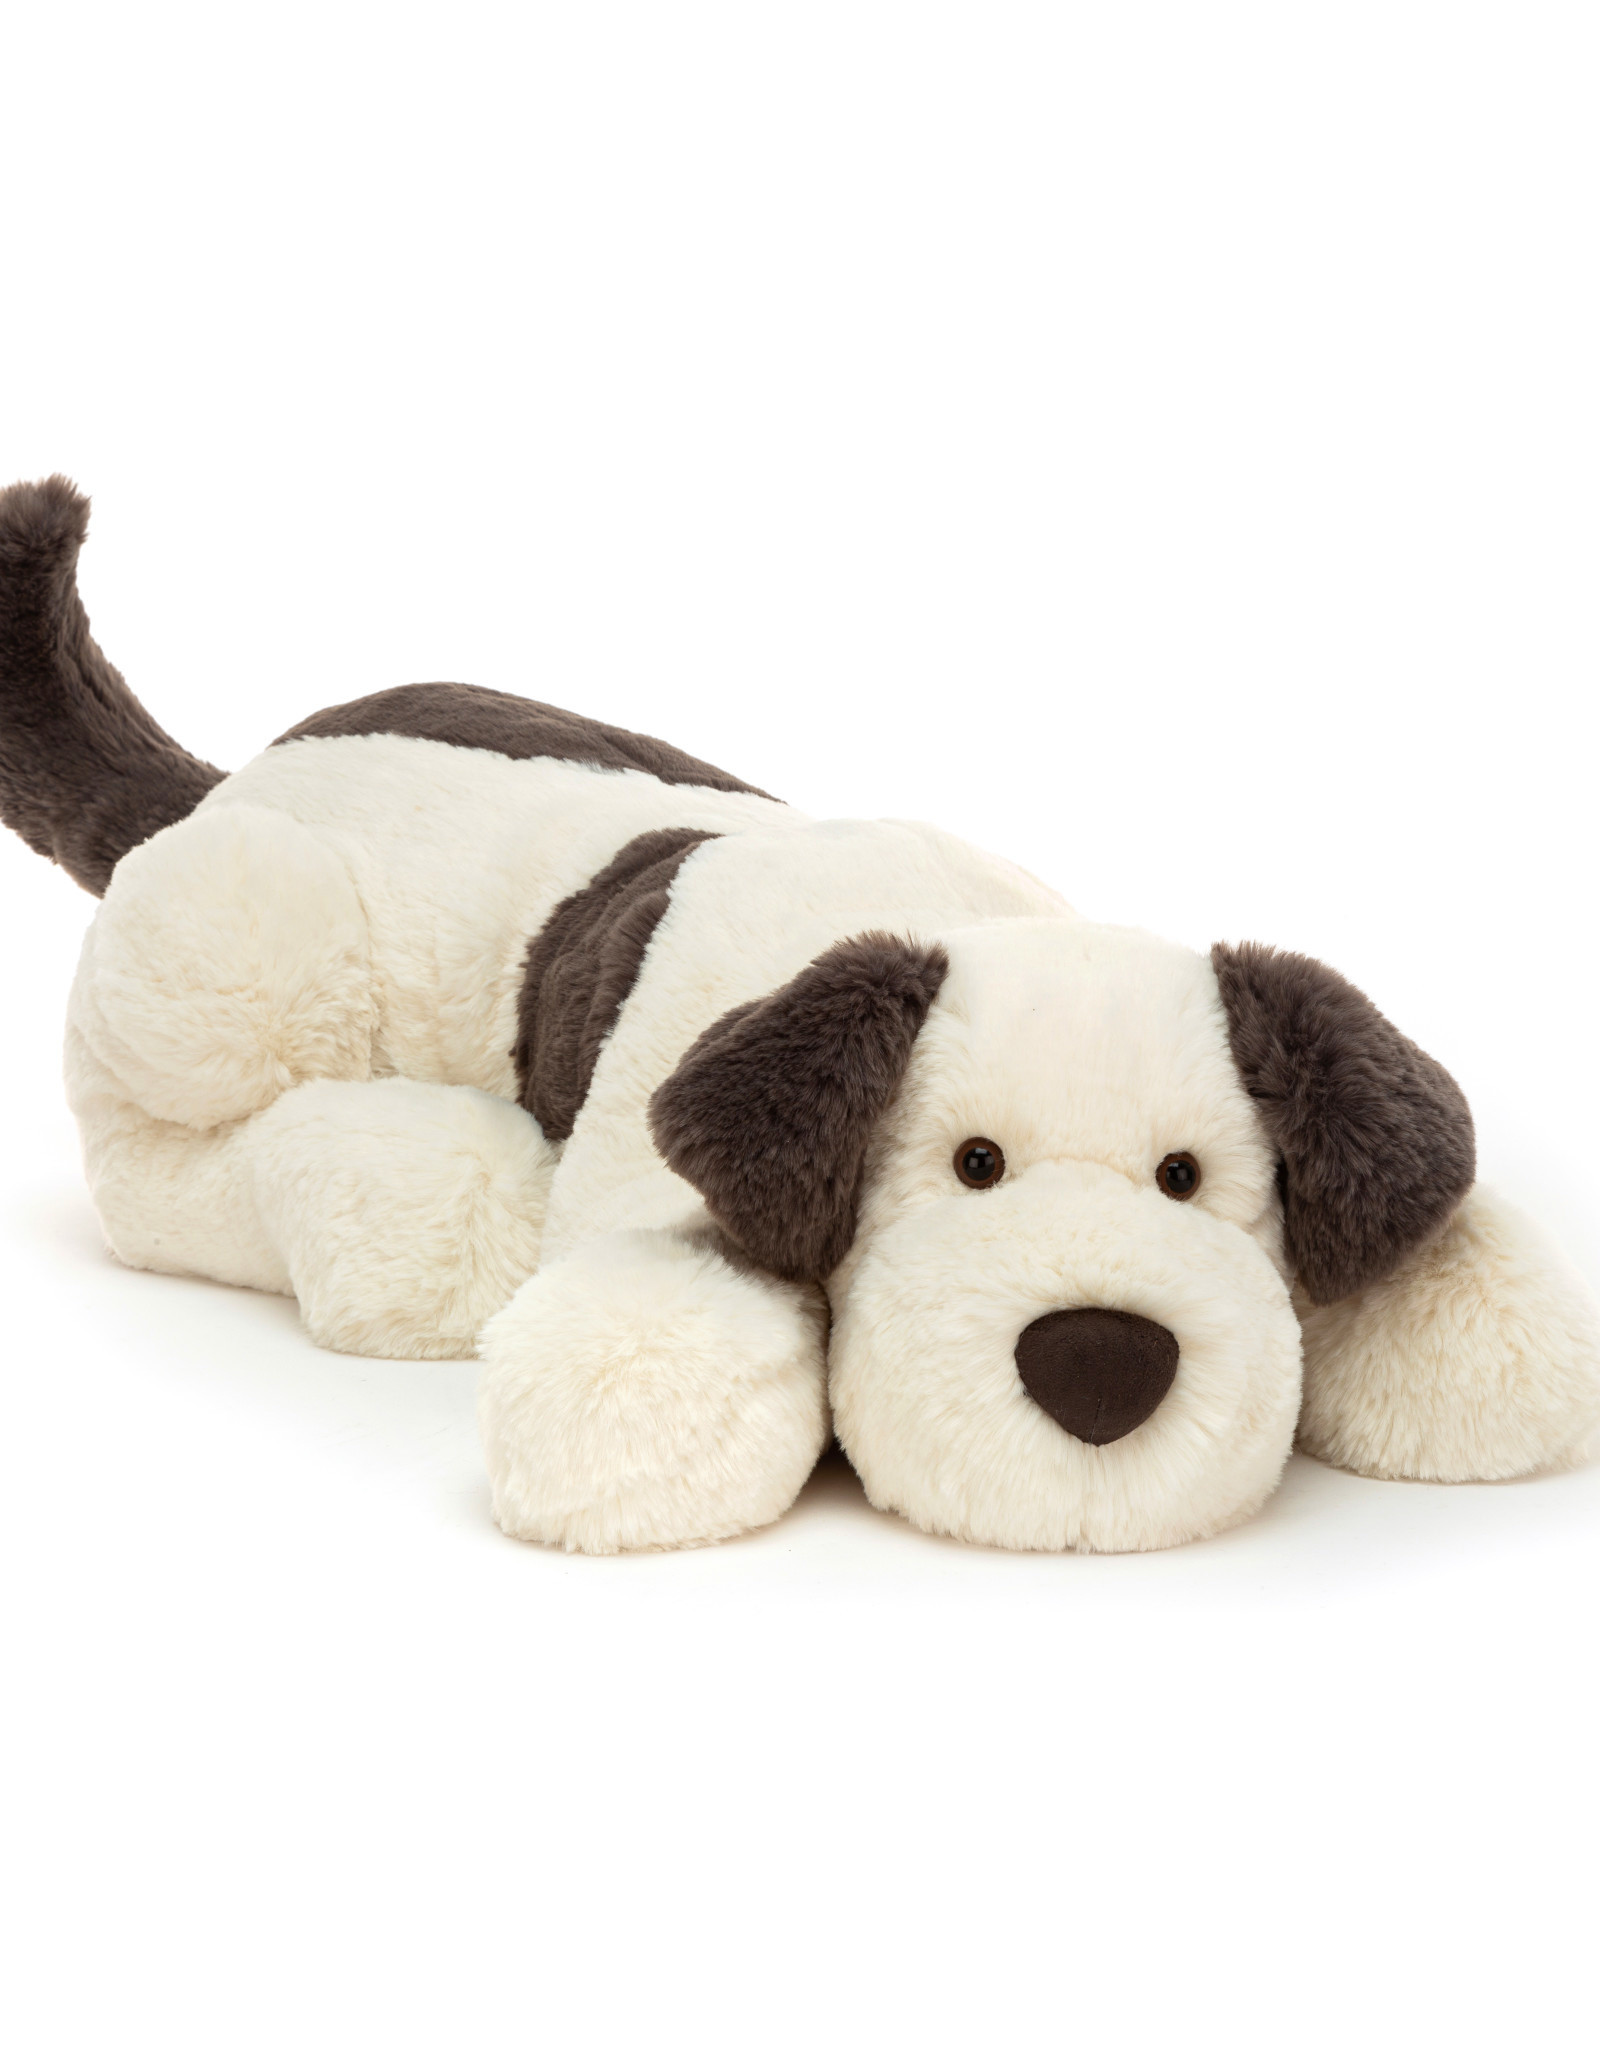 Jellycat dashing dog- huge